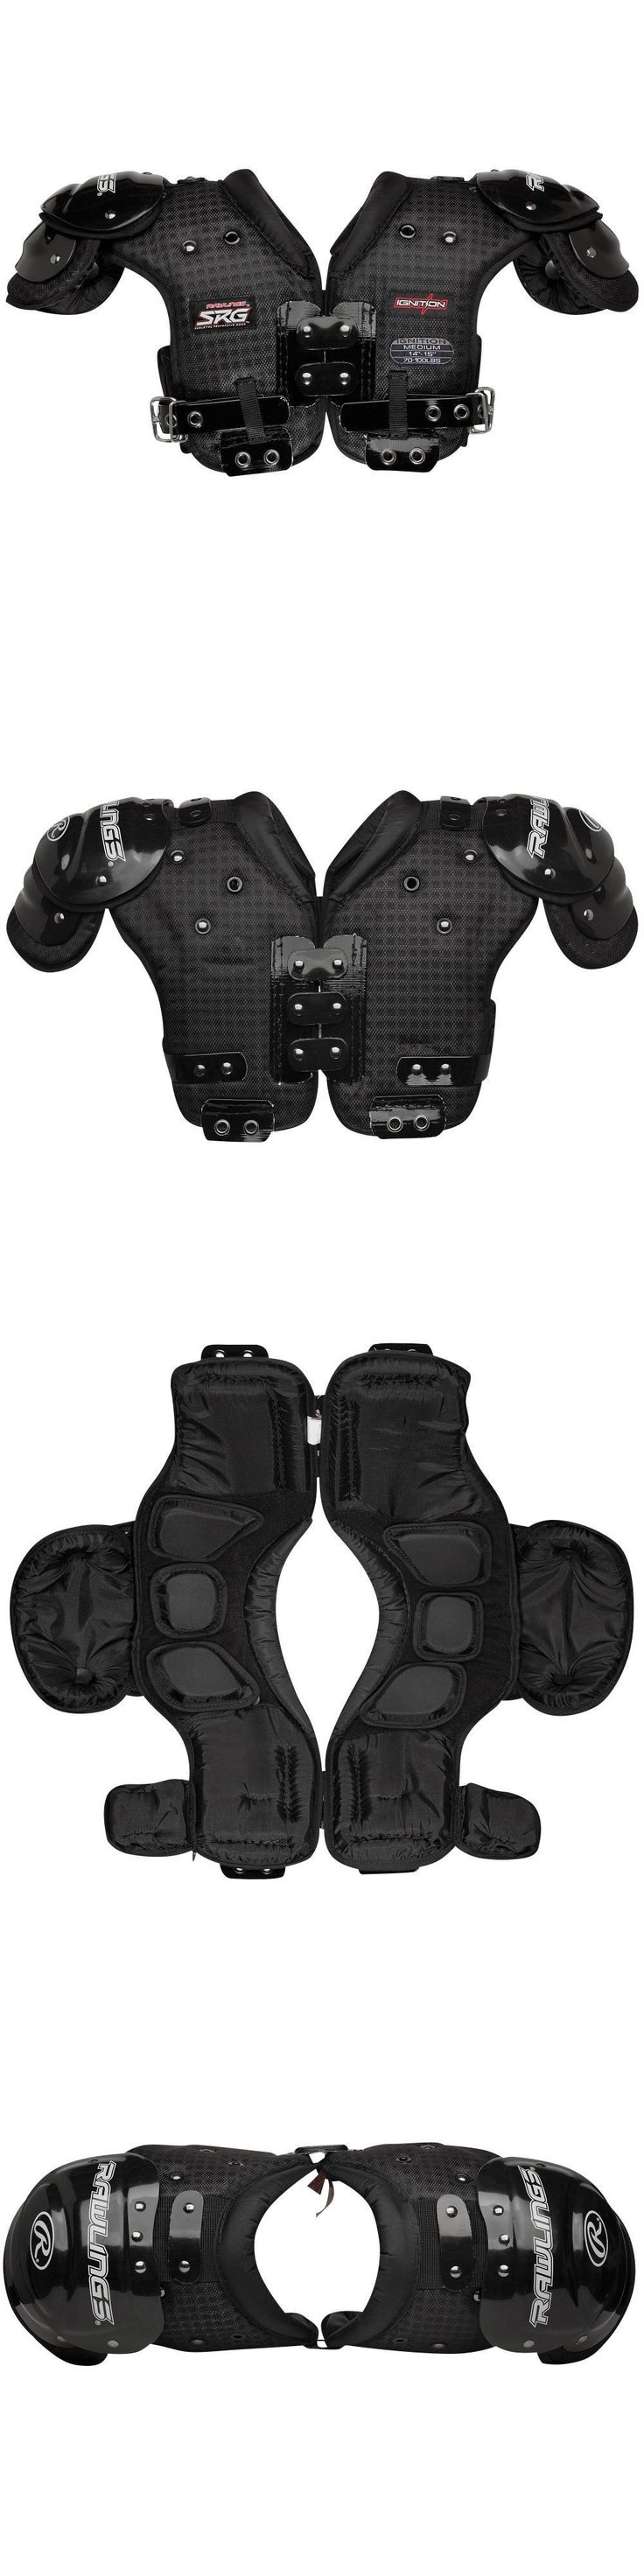 Protective Gear 21224: New Rawlings Youth Ignition Football Shoulder Pads - Ignition - Various Sizes -> BUY IT NOW ONLY: $69.99 on eBay!